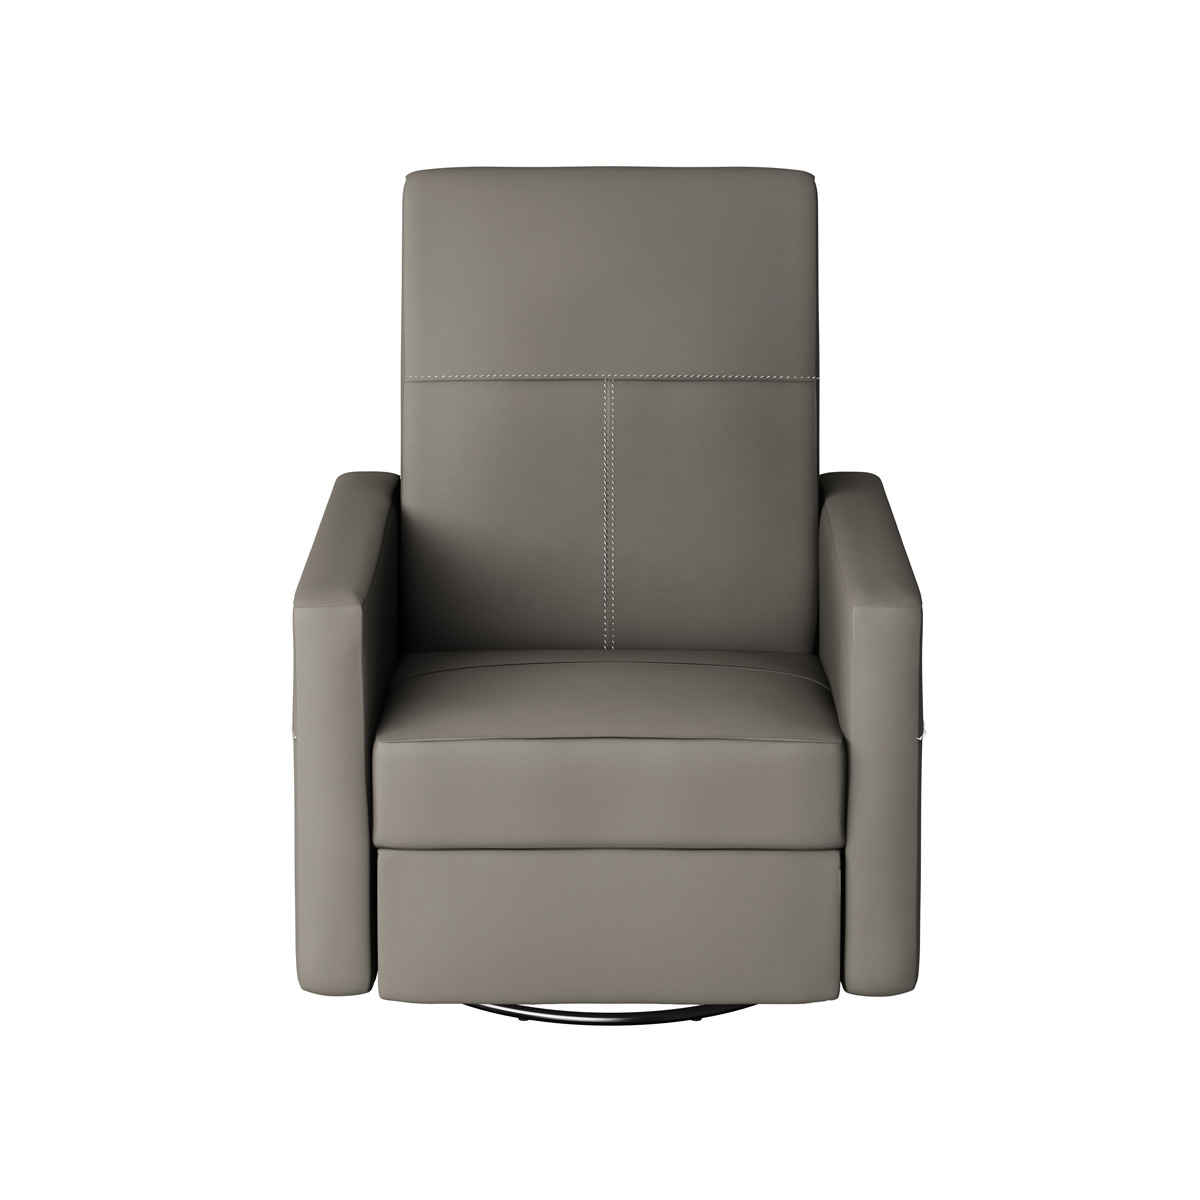 Dutailier Minho Upholstered Glider Recliner with Built-in Footrest in Matte Black with Castle Grey Fabric FREE SHIPPING  sc 1 st  Simply Baby Furniture & Dutailier Minho Upholstered Glider Recliner with Built-in Footrest ... islam-shia.org